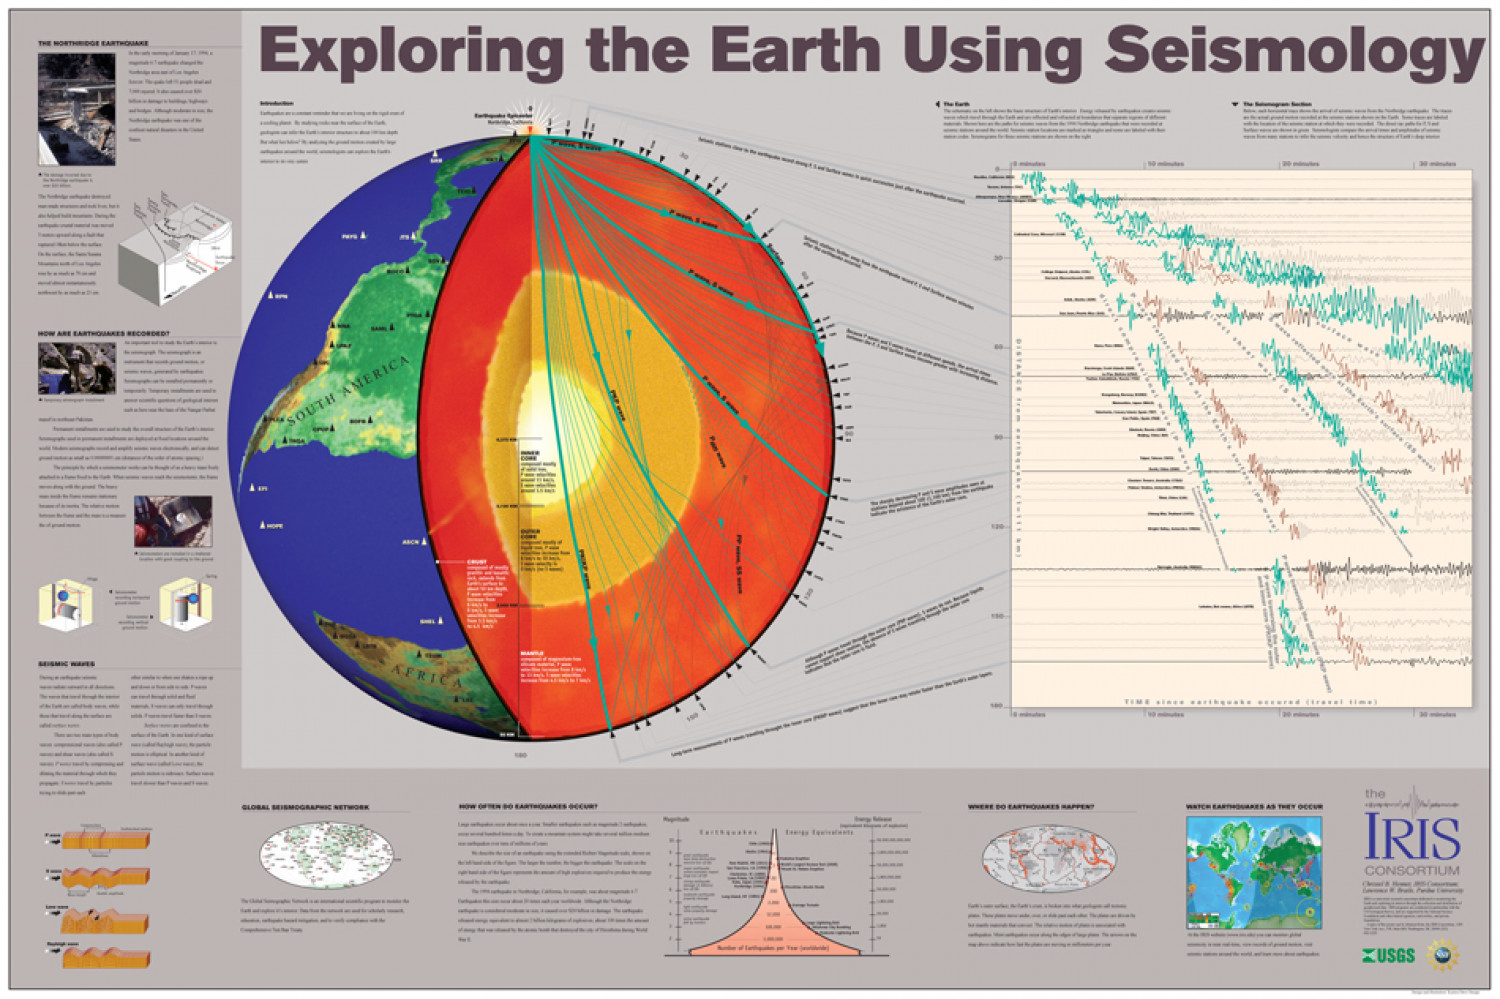 Exploring Earth Using Seismology